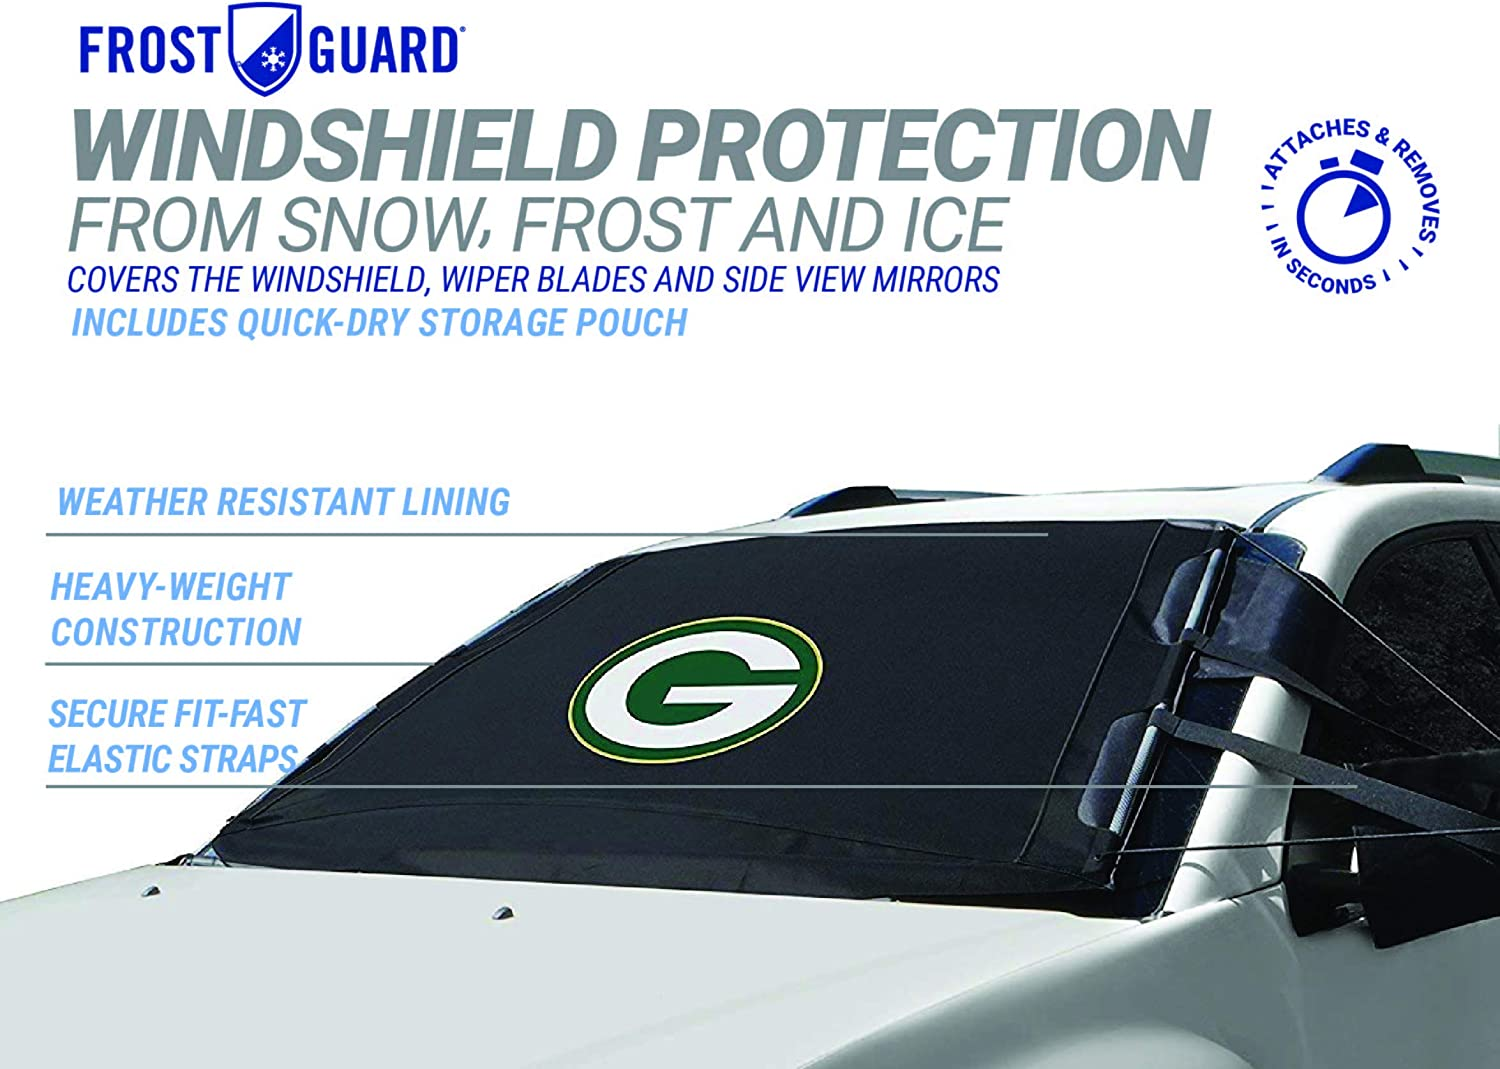 SUVs Green Bay Packers| Standard Size Car Windshield Cover Fits Most Compact Cars NFL Frost Guard Windshield Cover for Ice and Snow Sedans Small Trucks Black 60 x 40 Inches